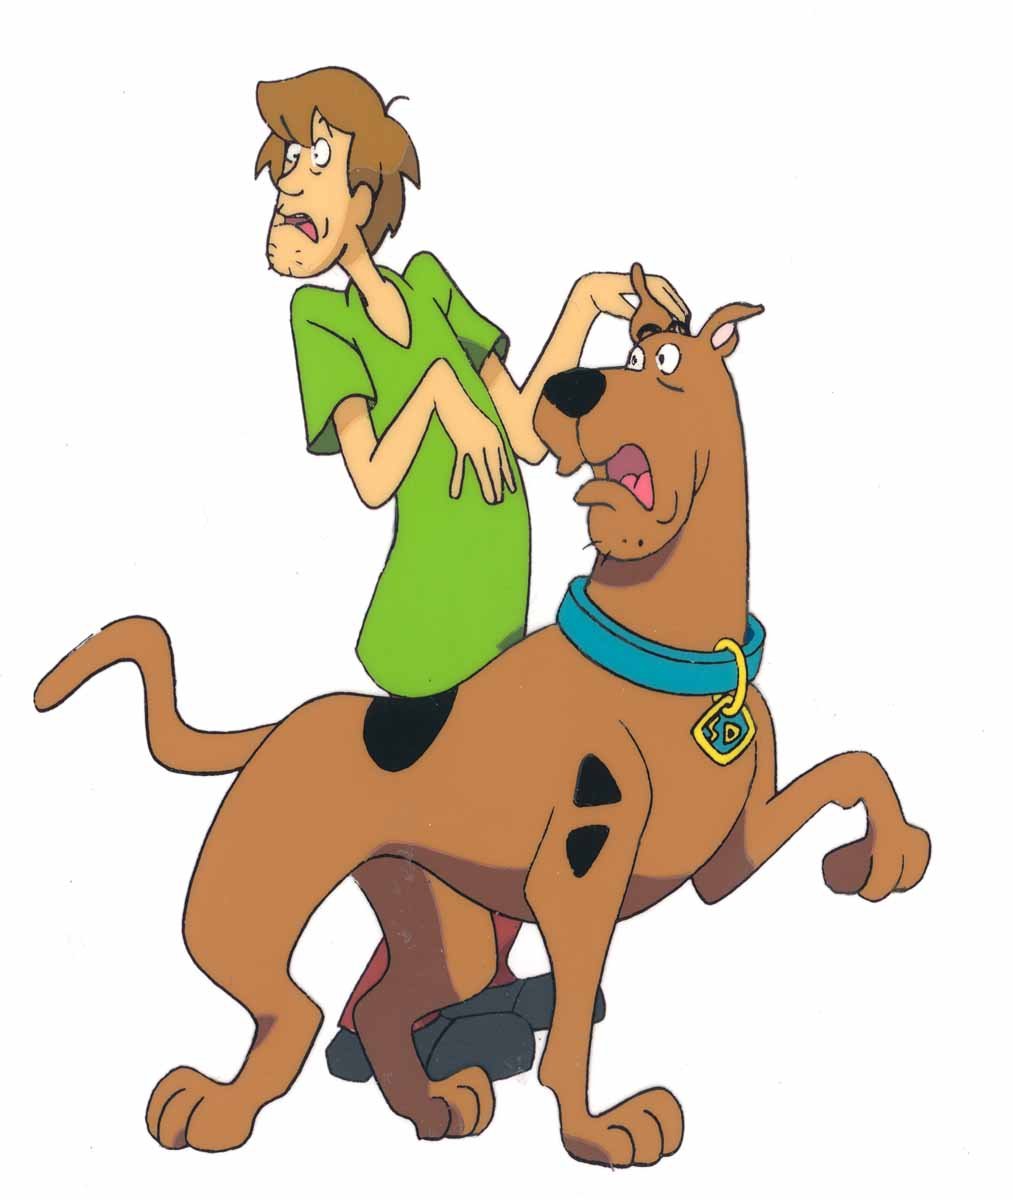 Scooby Doo's Lessons on Overcoming Stage Fright